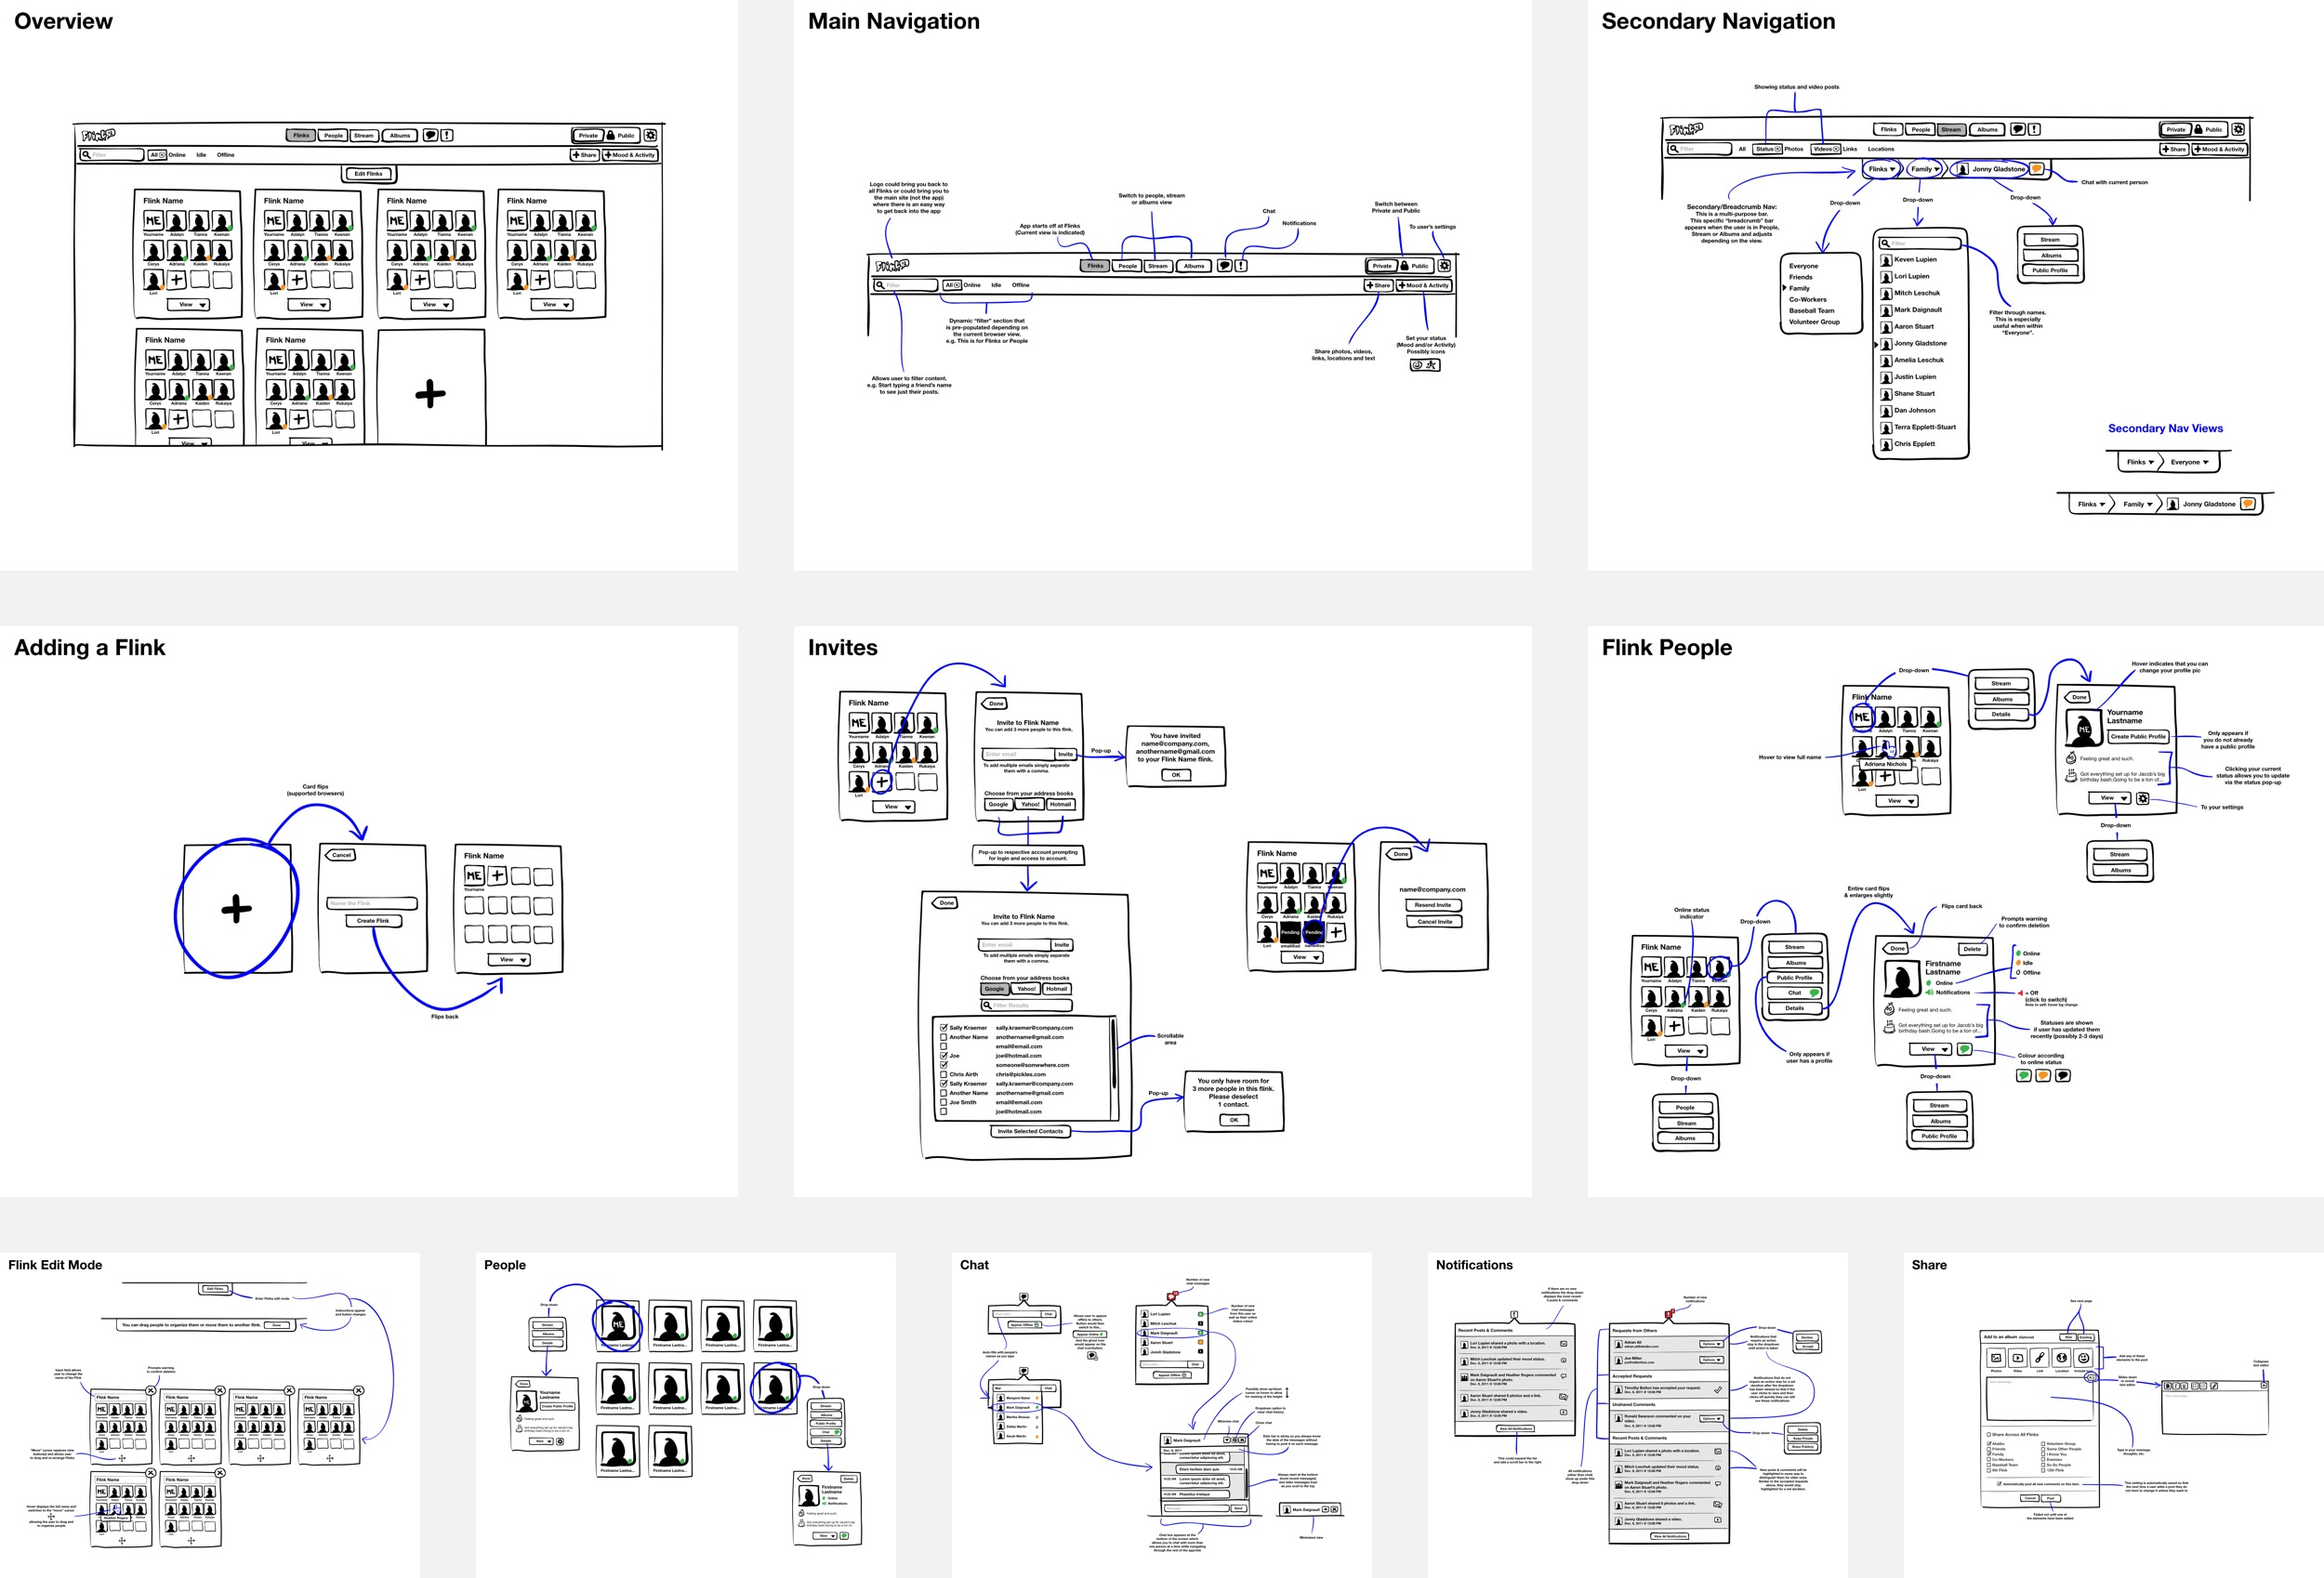 User flows helped illustrate how the new UI would drastically improve usability.